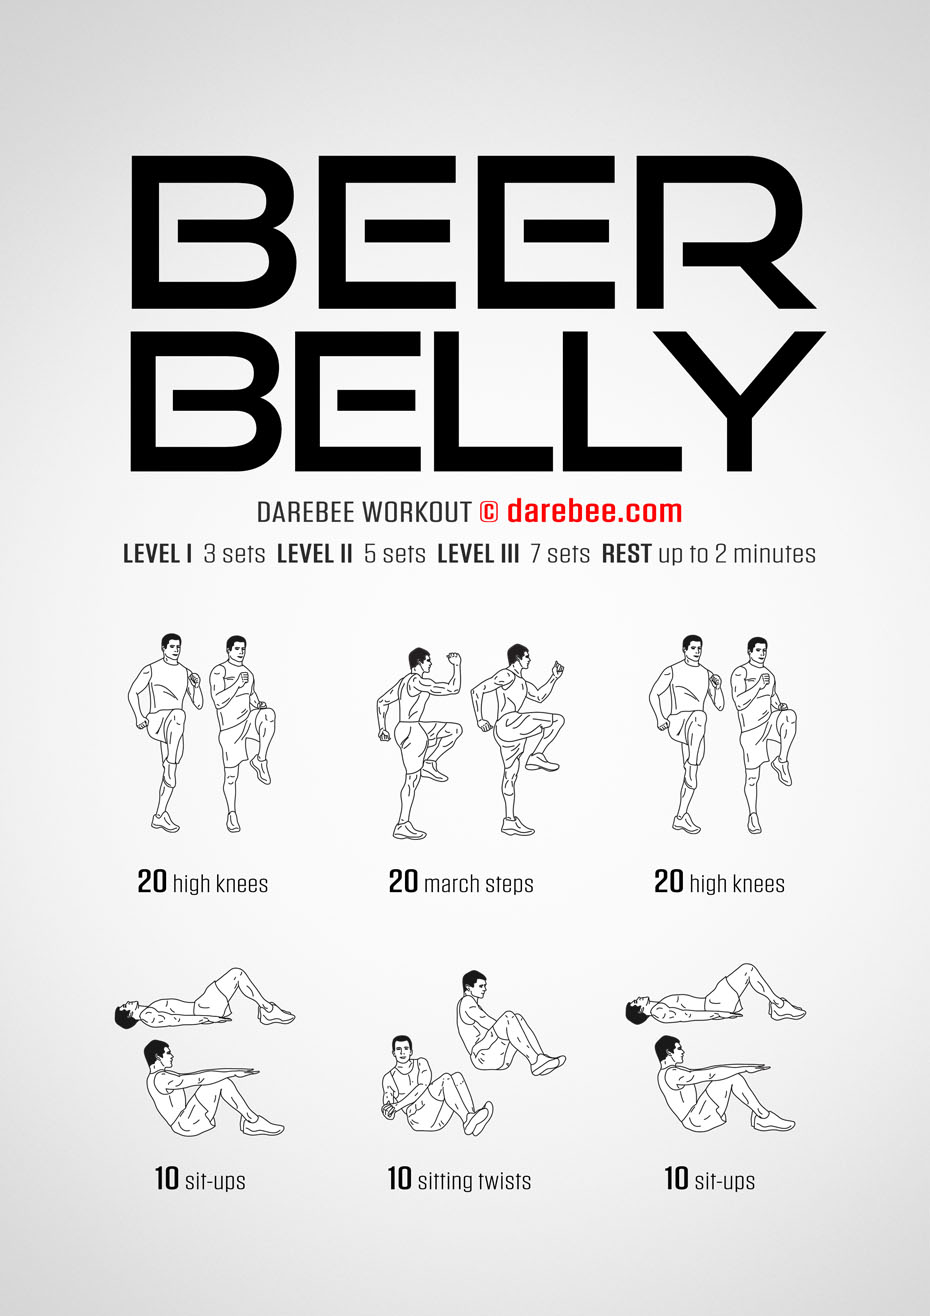 Beer Belly Workout